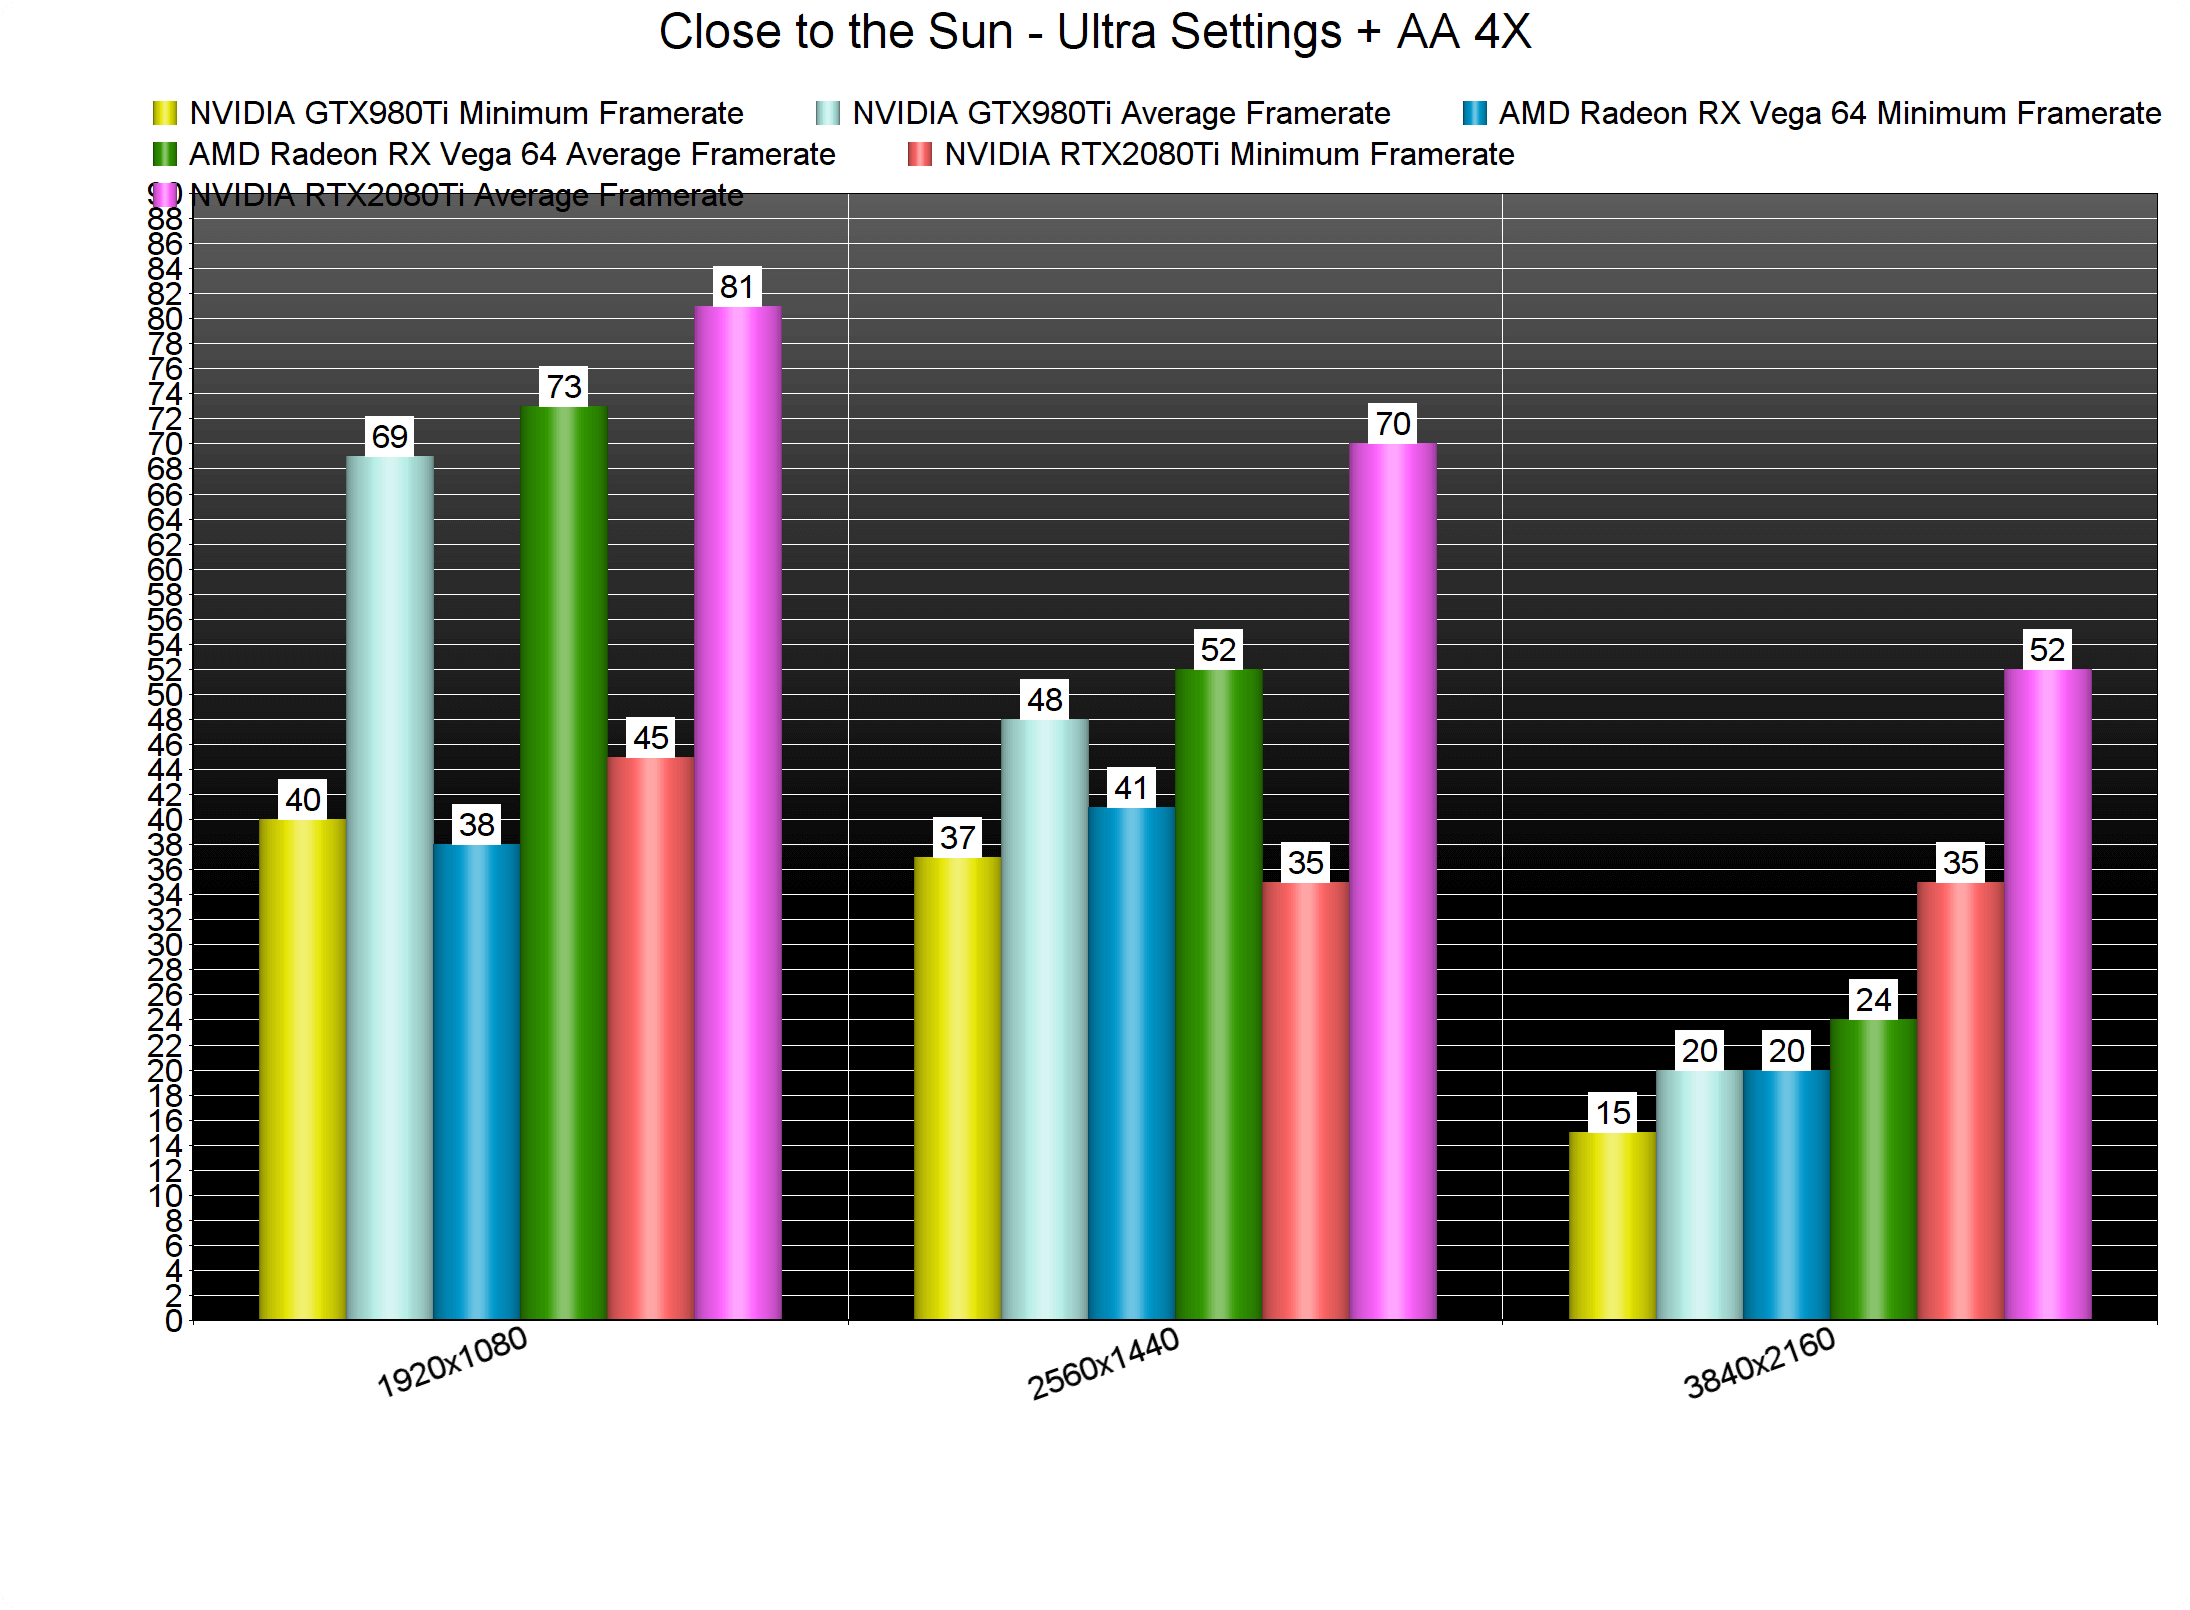 Close to the Sun PC Performance Analysis - DSOGaming